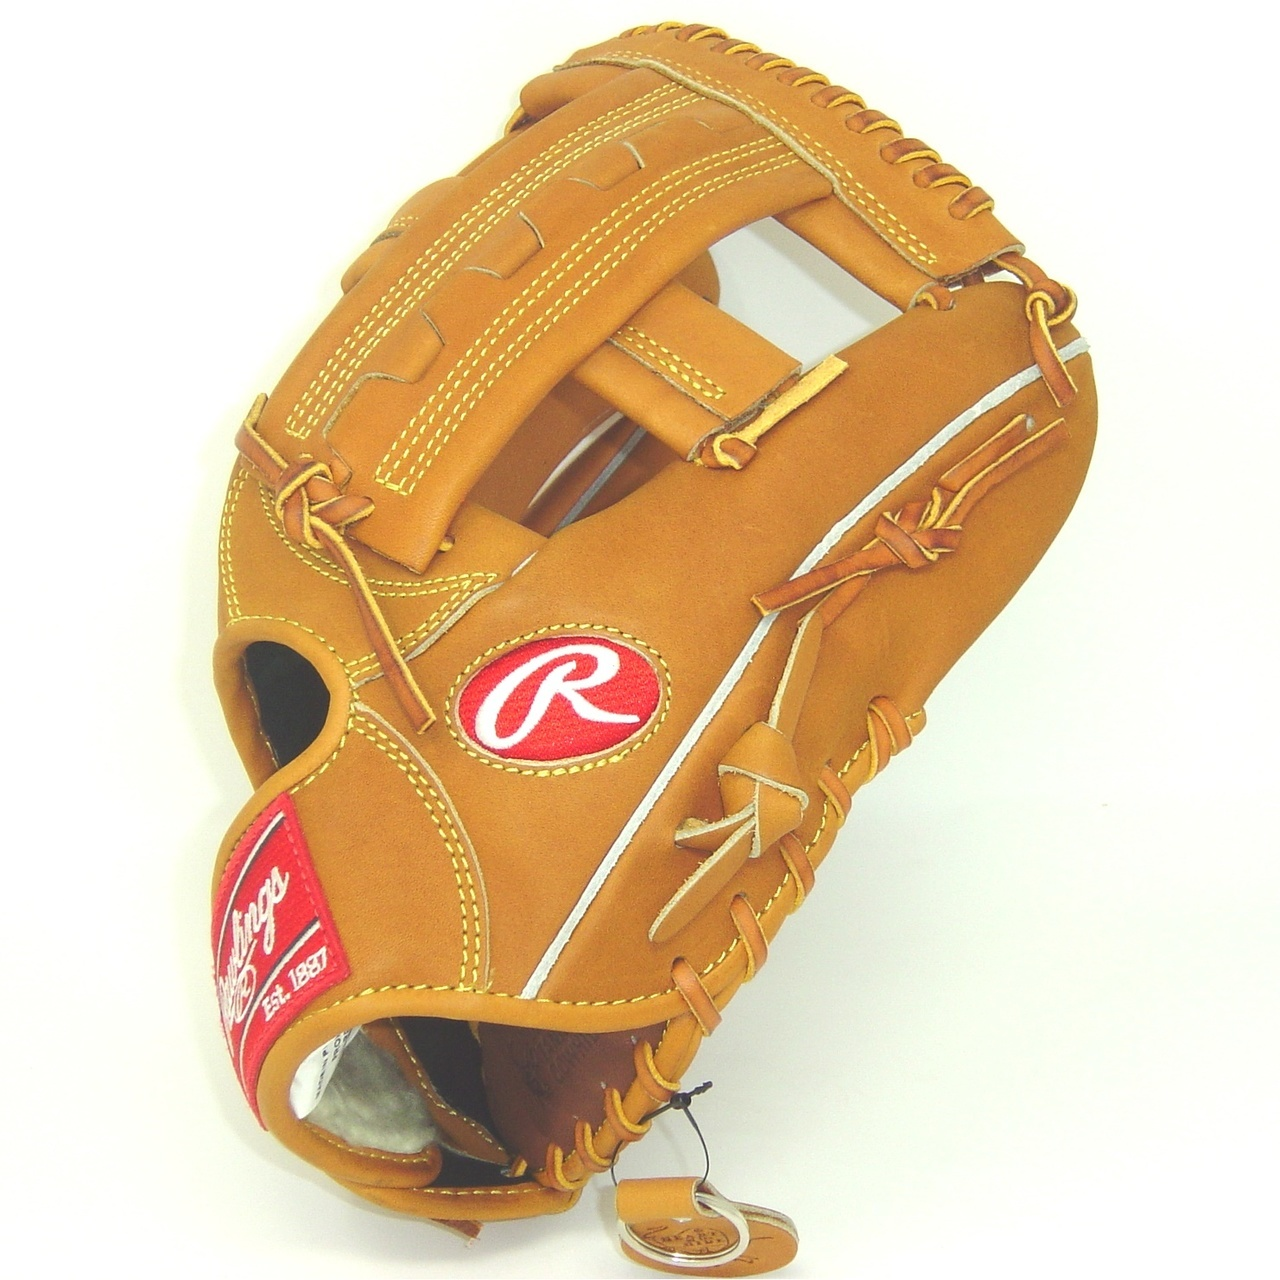 rawlings baseball glove prorv23